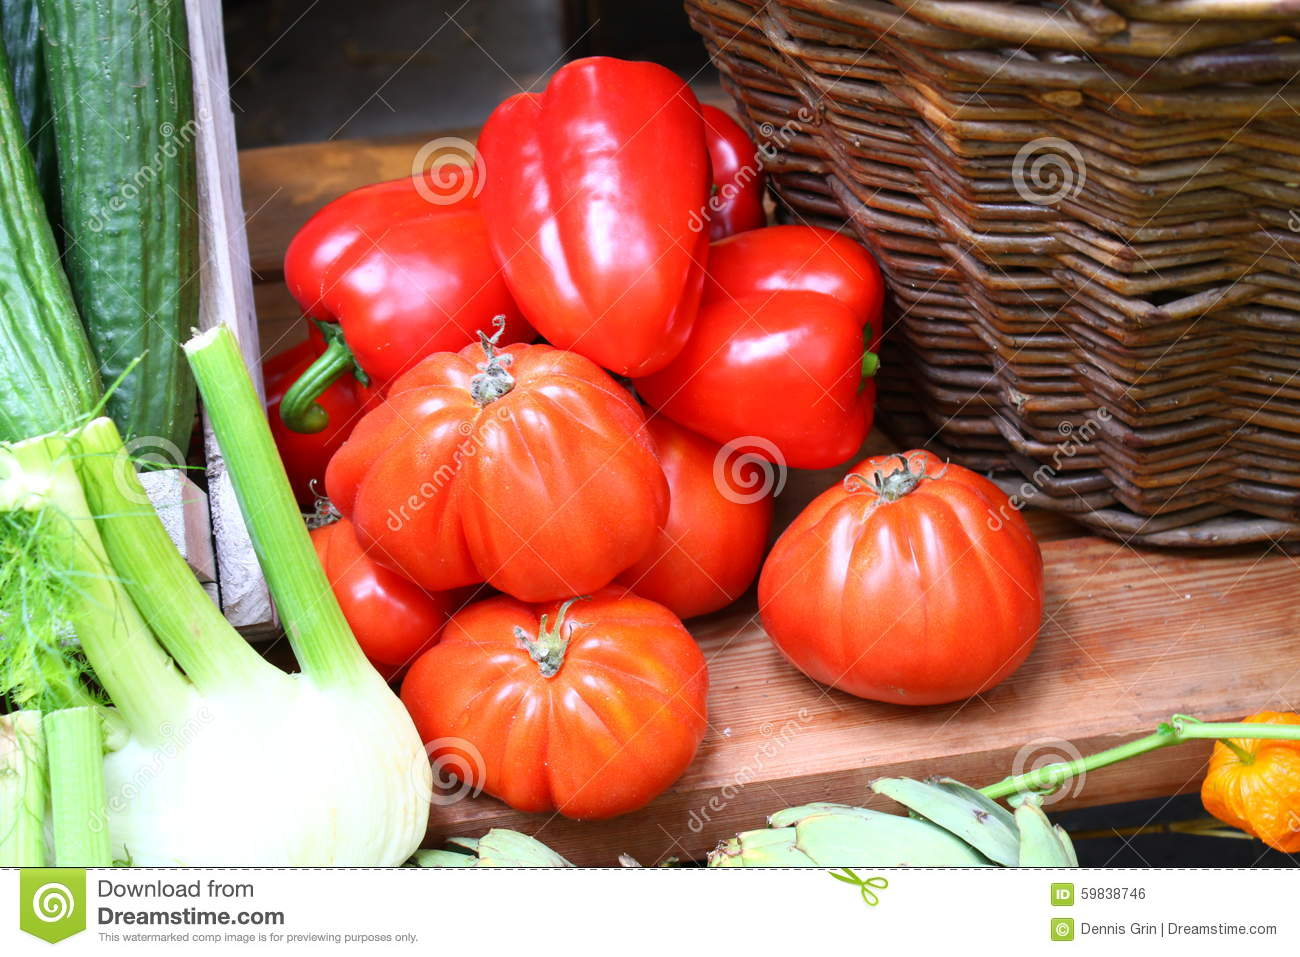 Big Tomatoes and Paprika with Wooden Bucket and Other Vegetables on Table